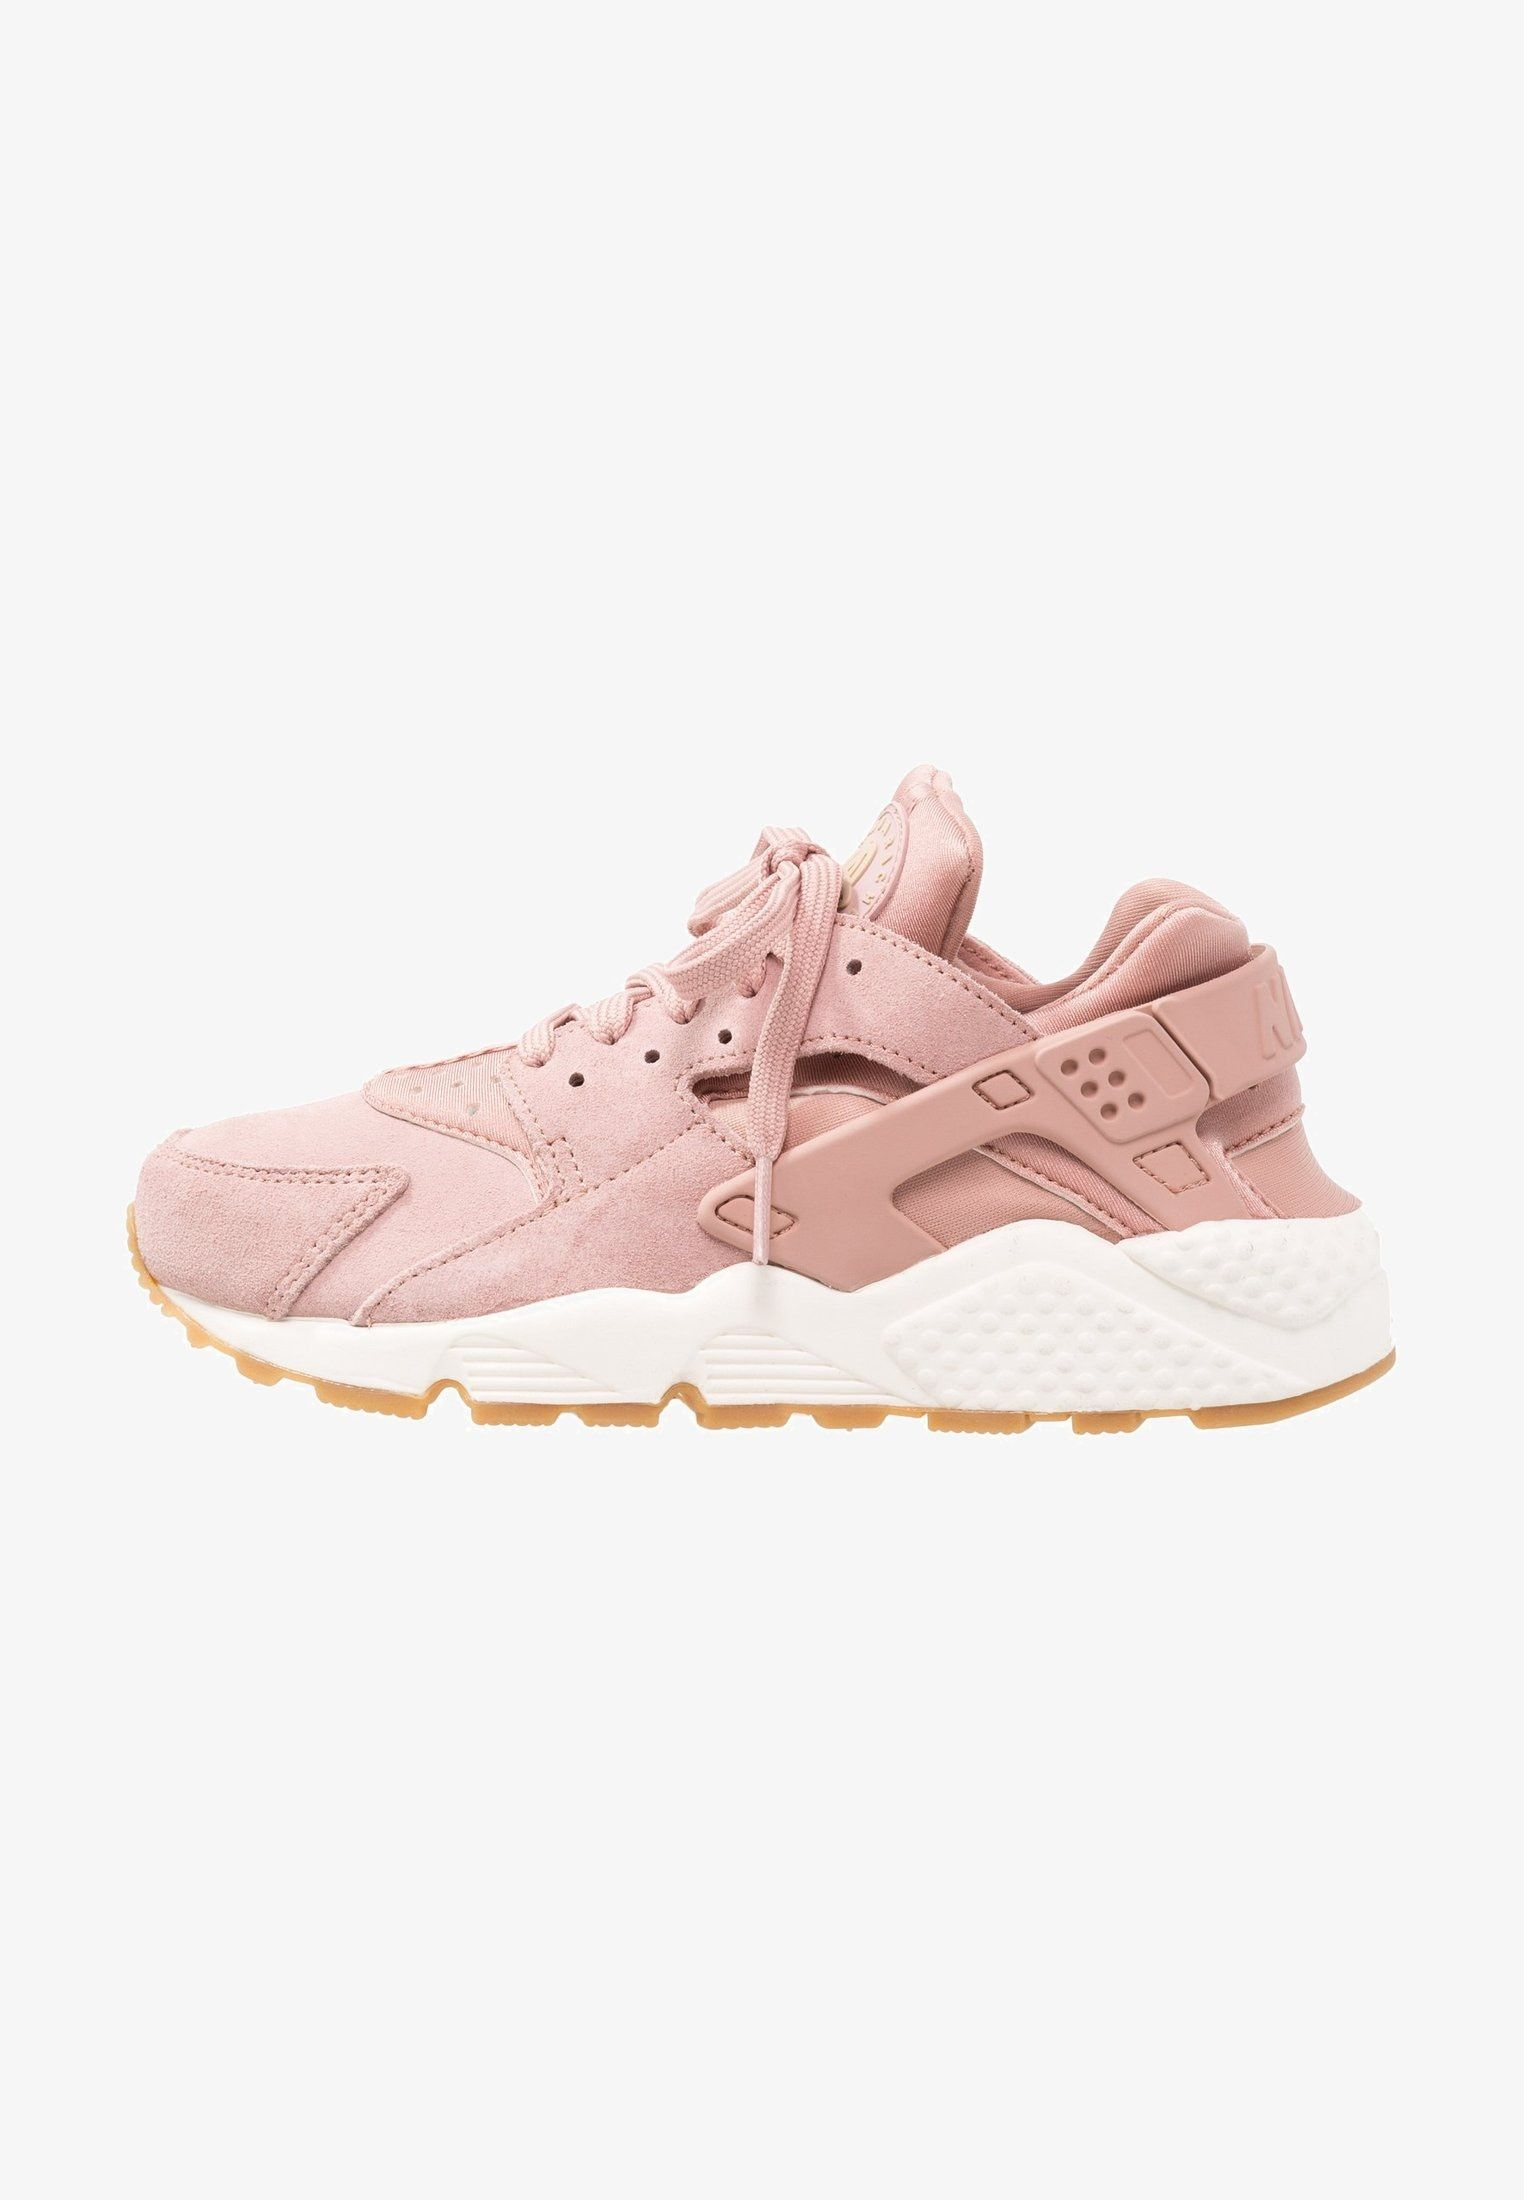 Nike Sportswear AIR HUARACHE RUN SD - Sneakers laag - particle  pink mushroom sail light brown - Zalando.be 839b20502b06